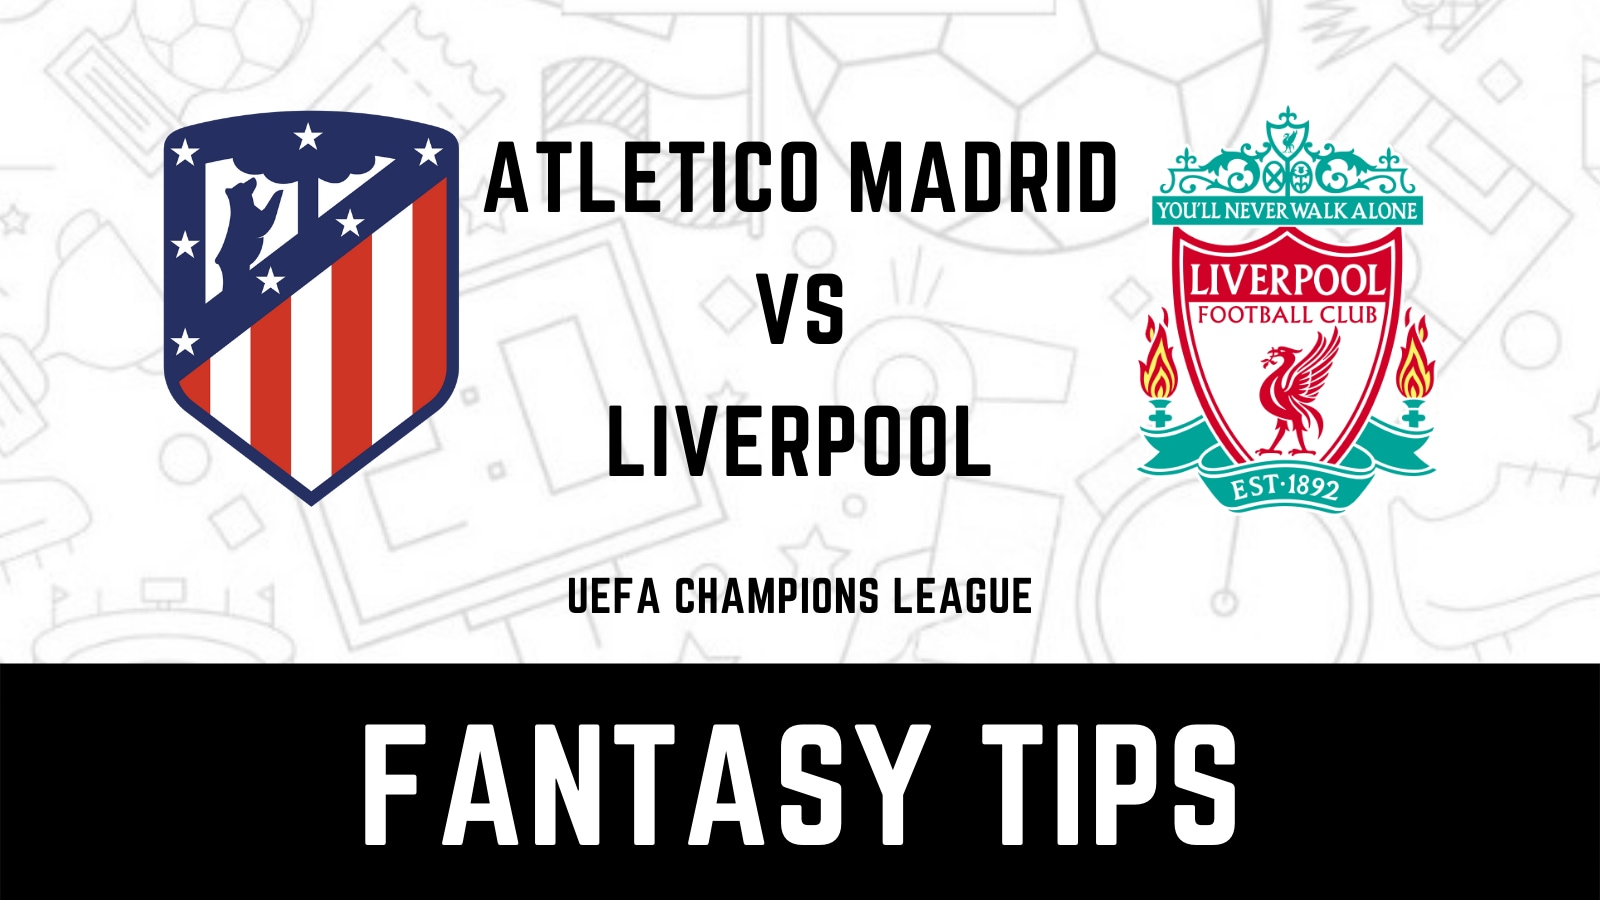 ATL vs LIV Dream11 Team Prediction and Tips for today's UEFA Champions League 2021-22 match: Check Captain, Vice-Captain and probable playing XIs for today's UEFA Champions League 2021-22 match Atletico Madrid vs Liverpool October 20 12:30 am IST